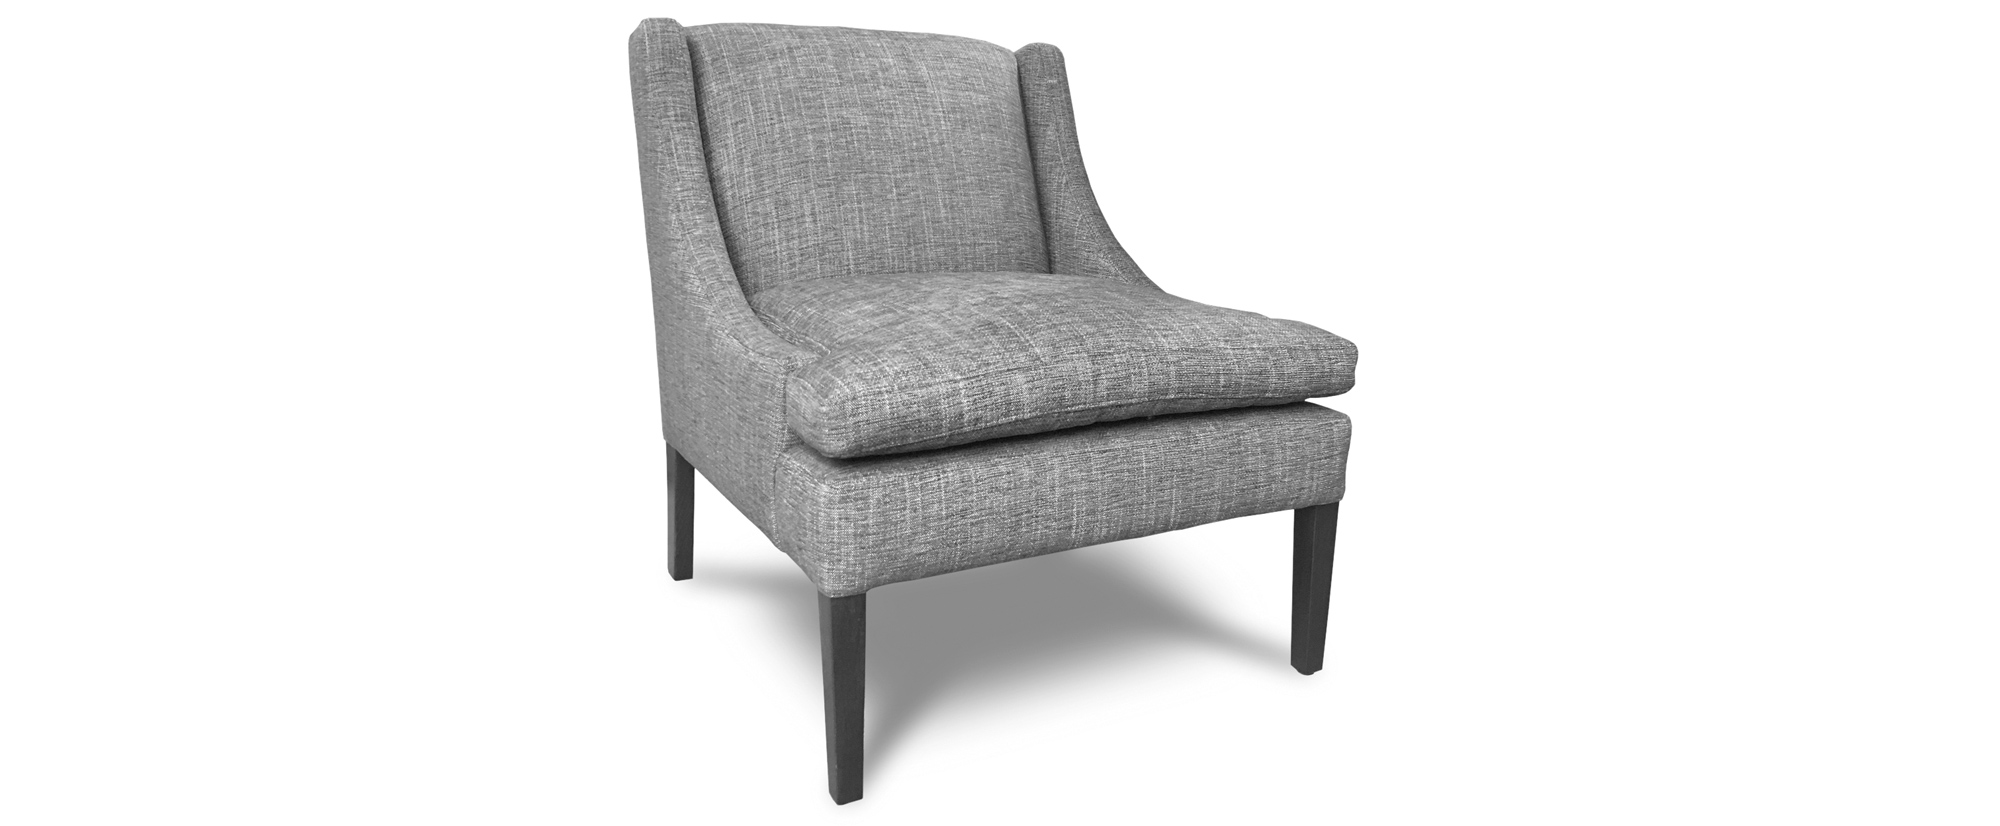 Contemporary Chairs - Admiral